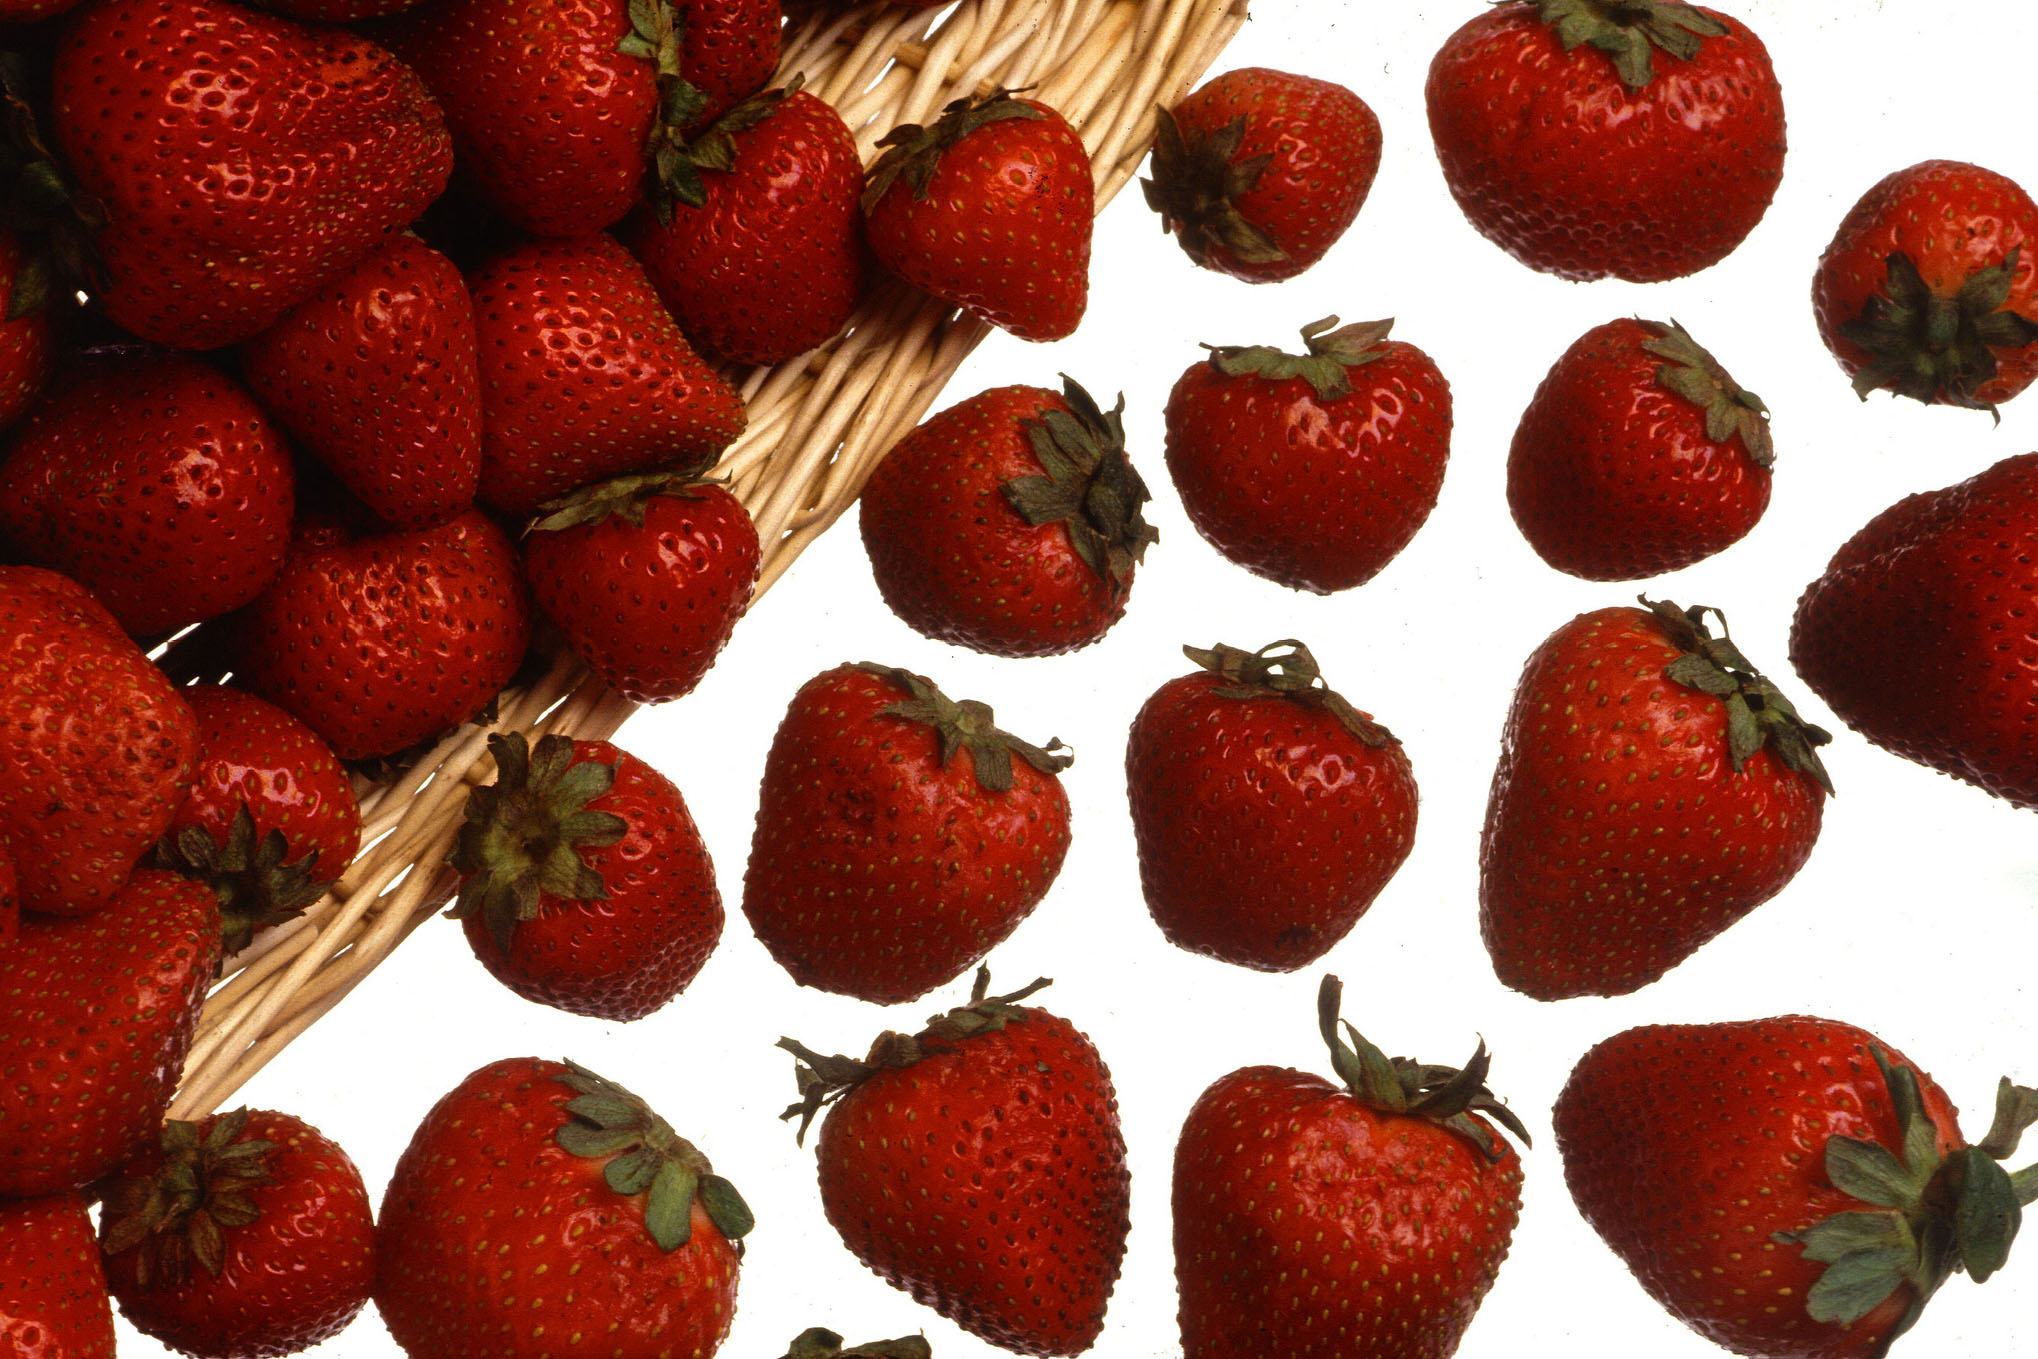 Strawberries are a complex carbohydrate. (Keith Weller, USDA/Flickr)